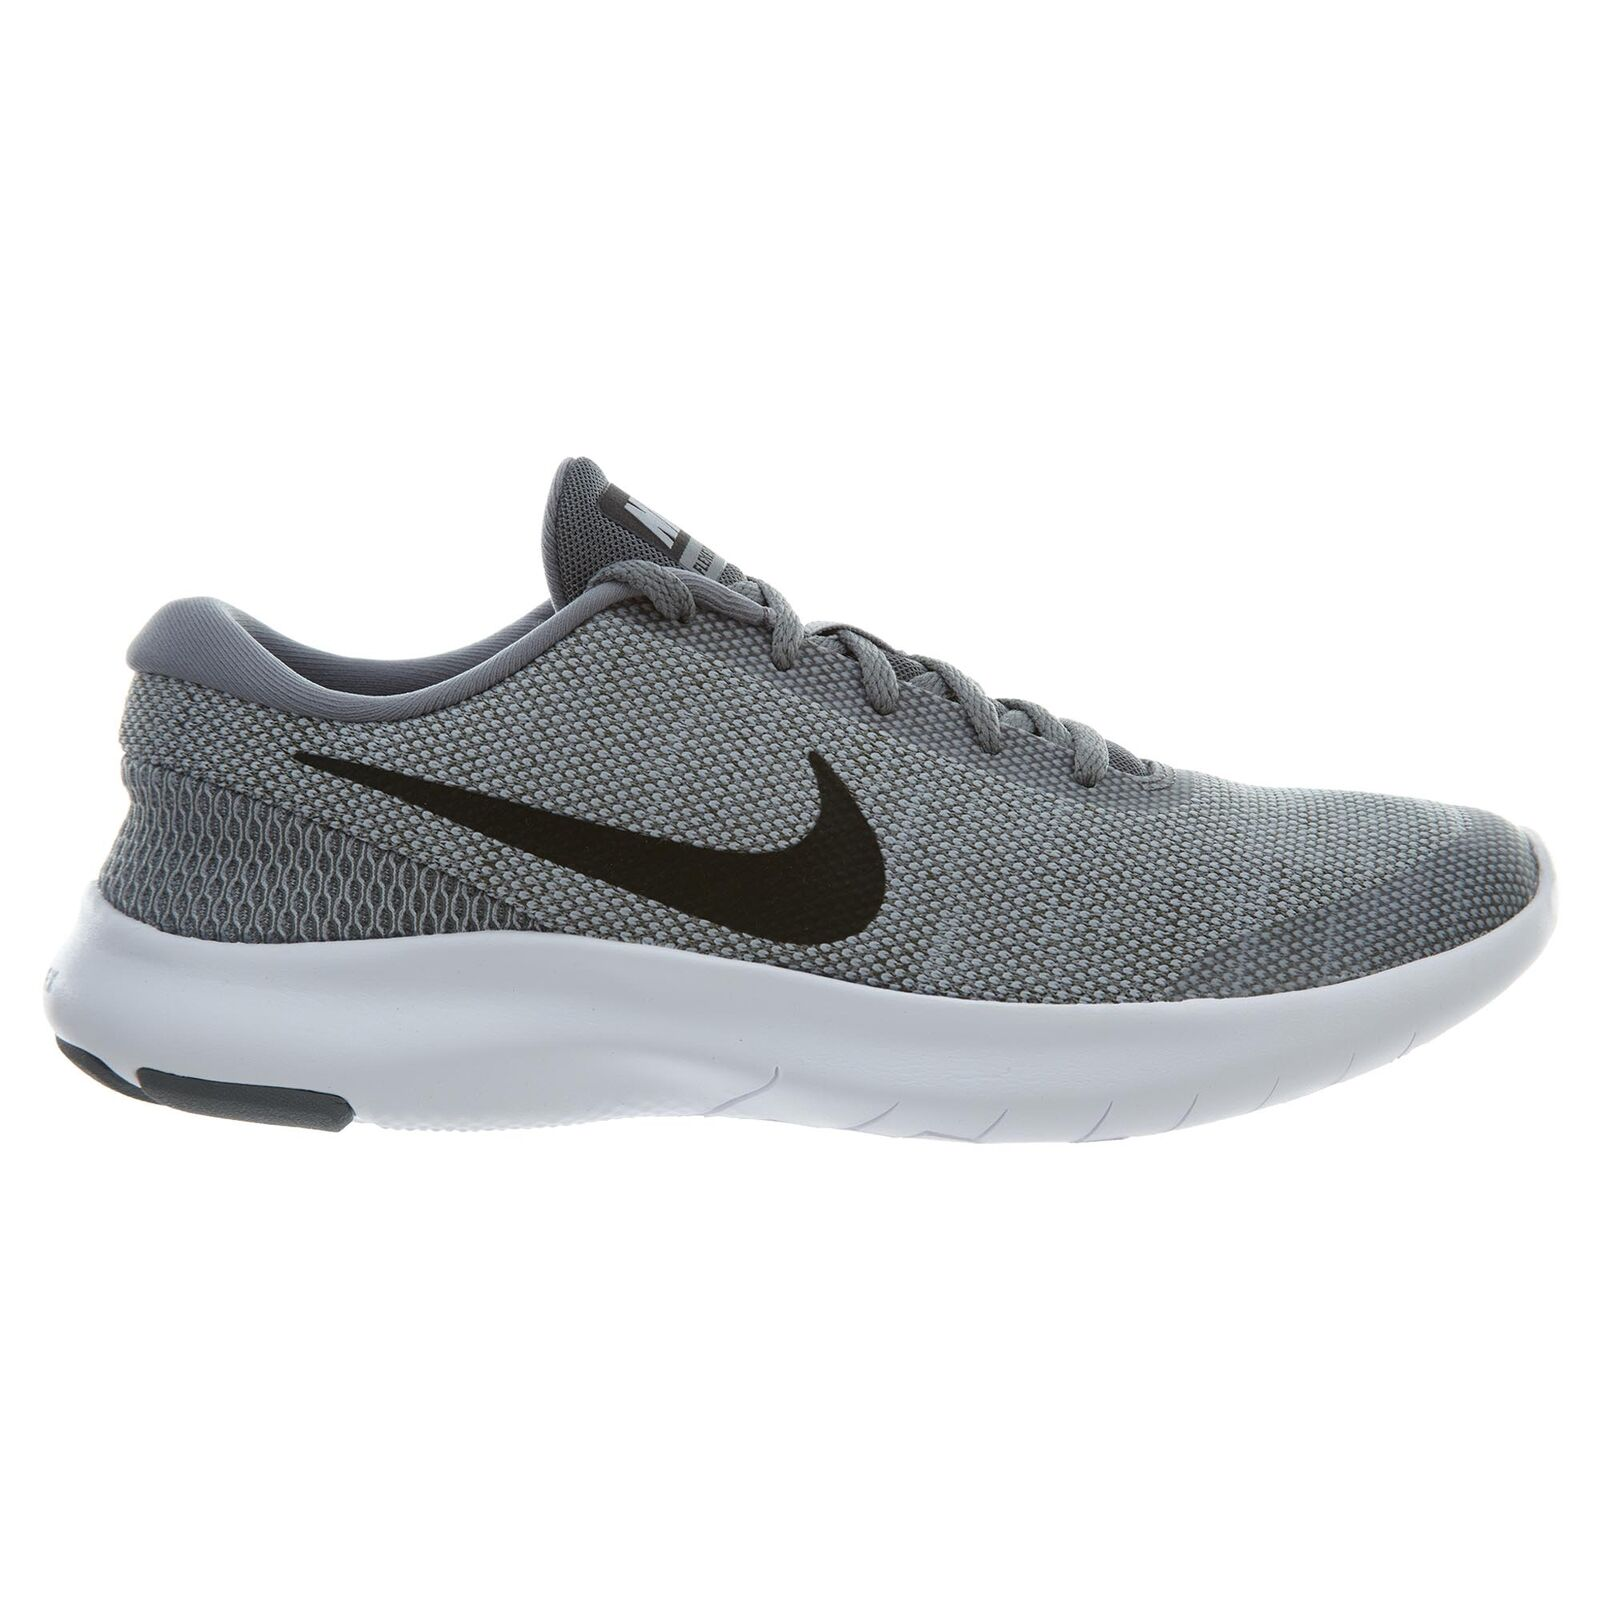 best loved 1badd 1b6a7 Nike Flex Experience RN 7 Mens 908985-011 Cool Cool Cool Wolf Grey Running  shoes Size 7.5 e81194